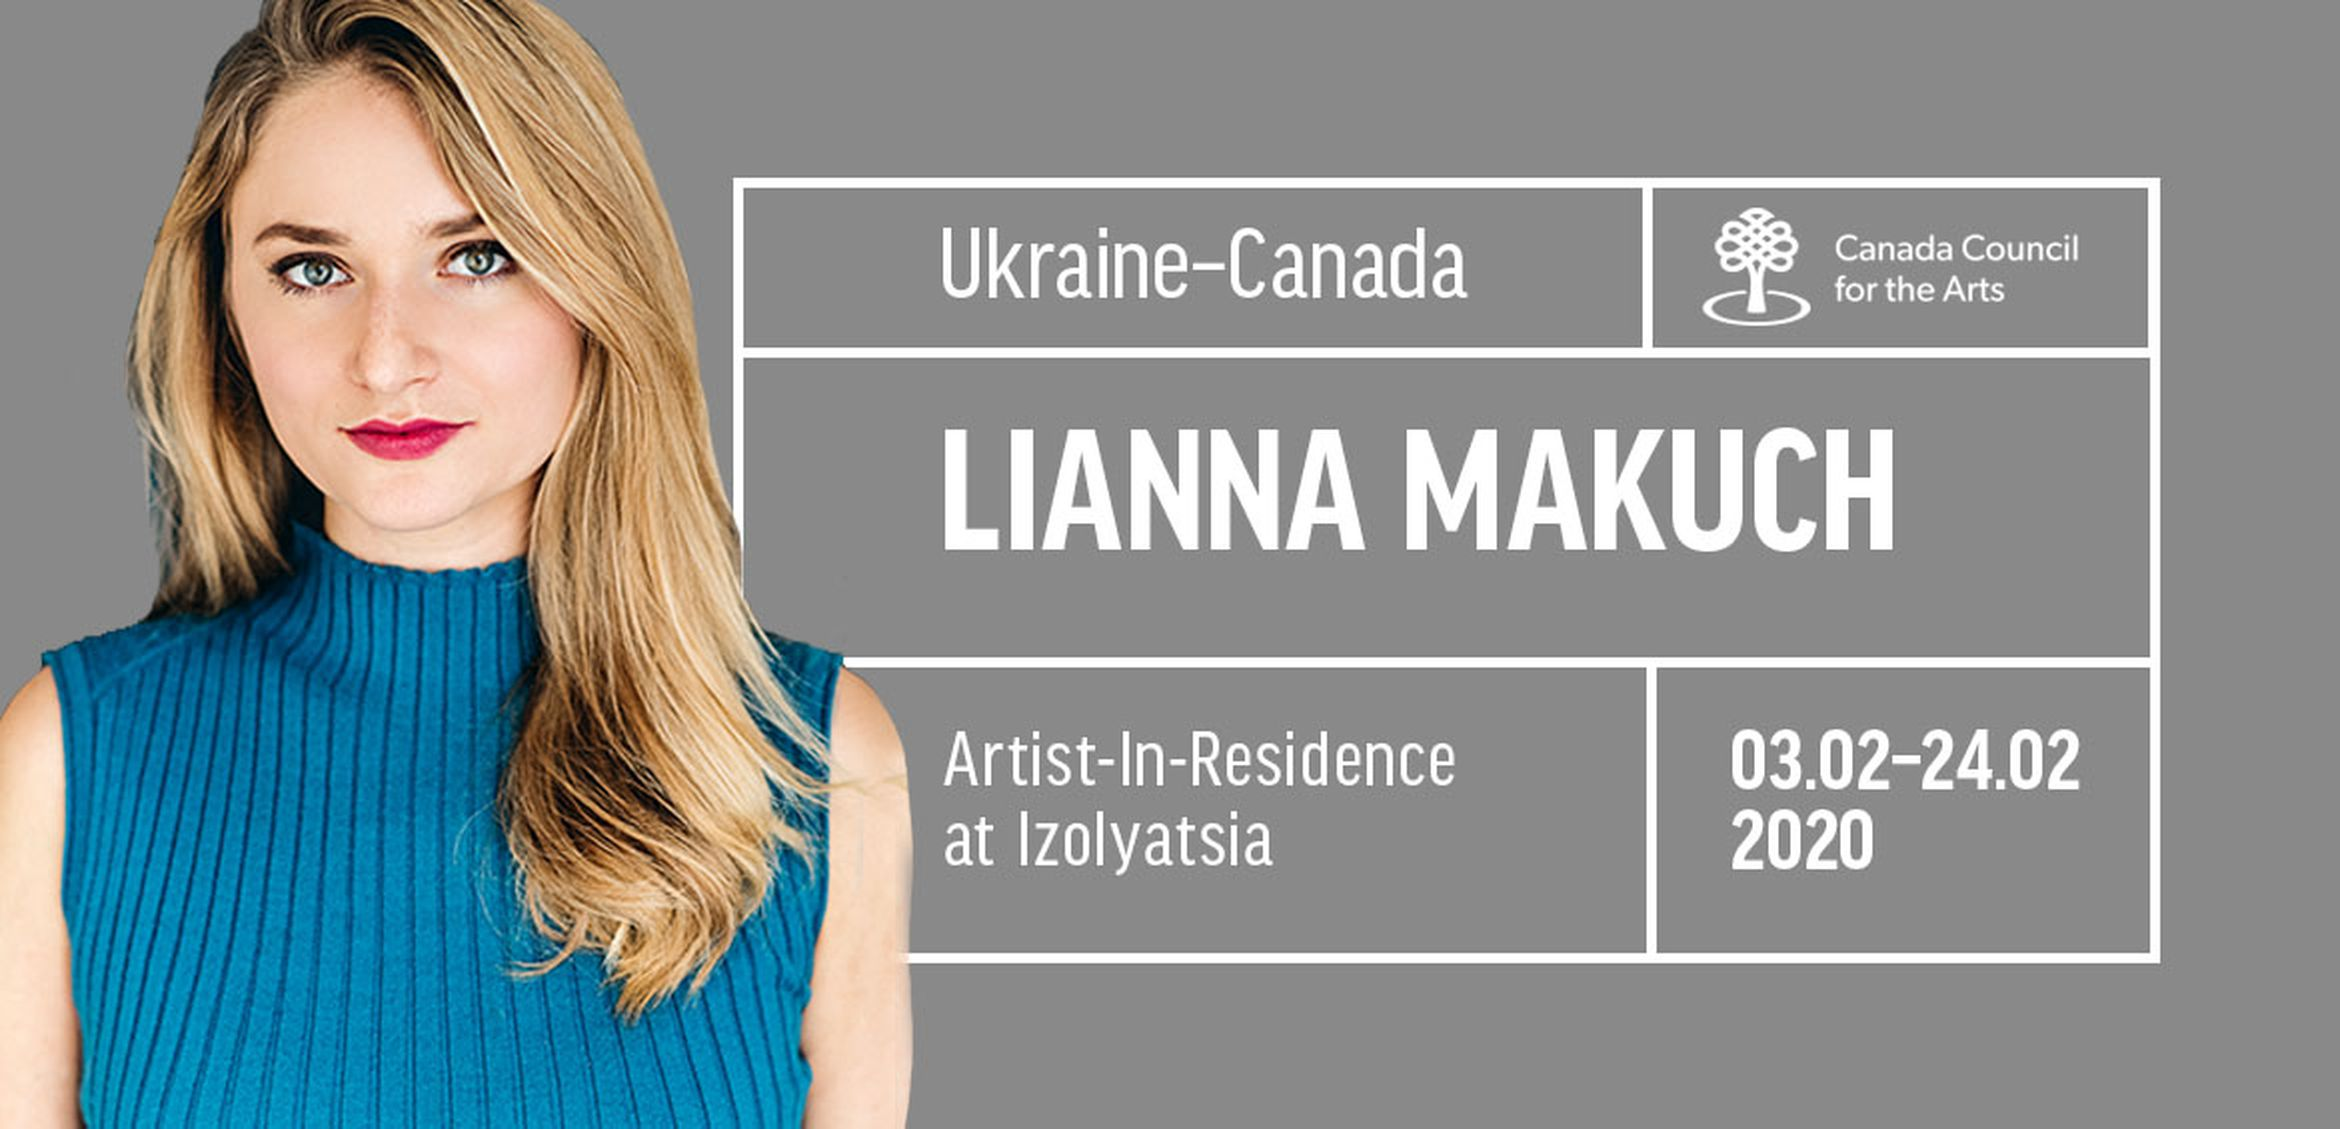 Playwright Lianna Makuch in residence at IZOLYATSIA